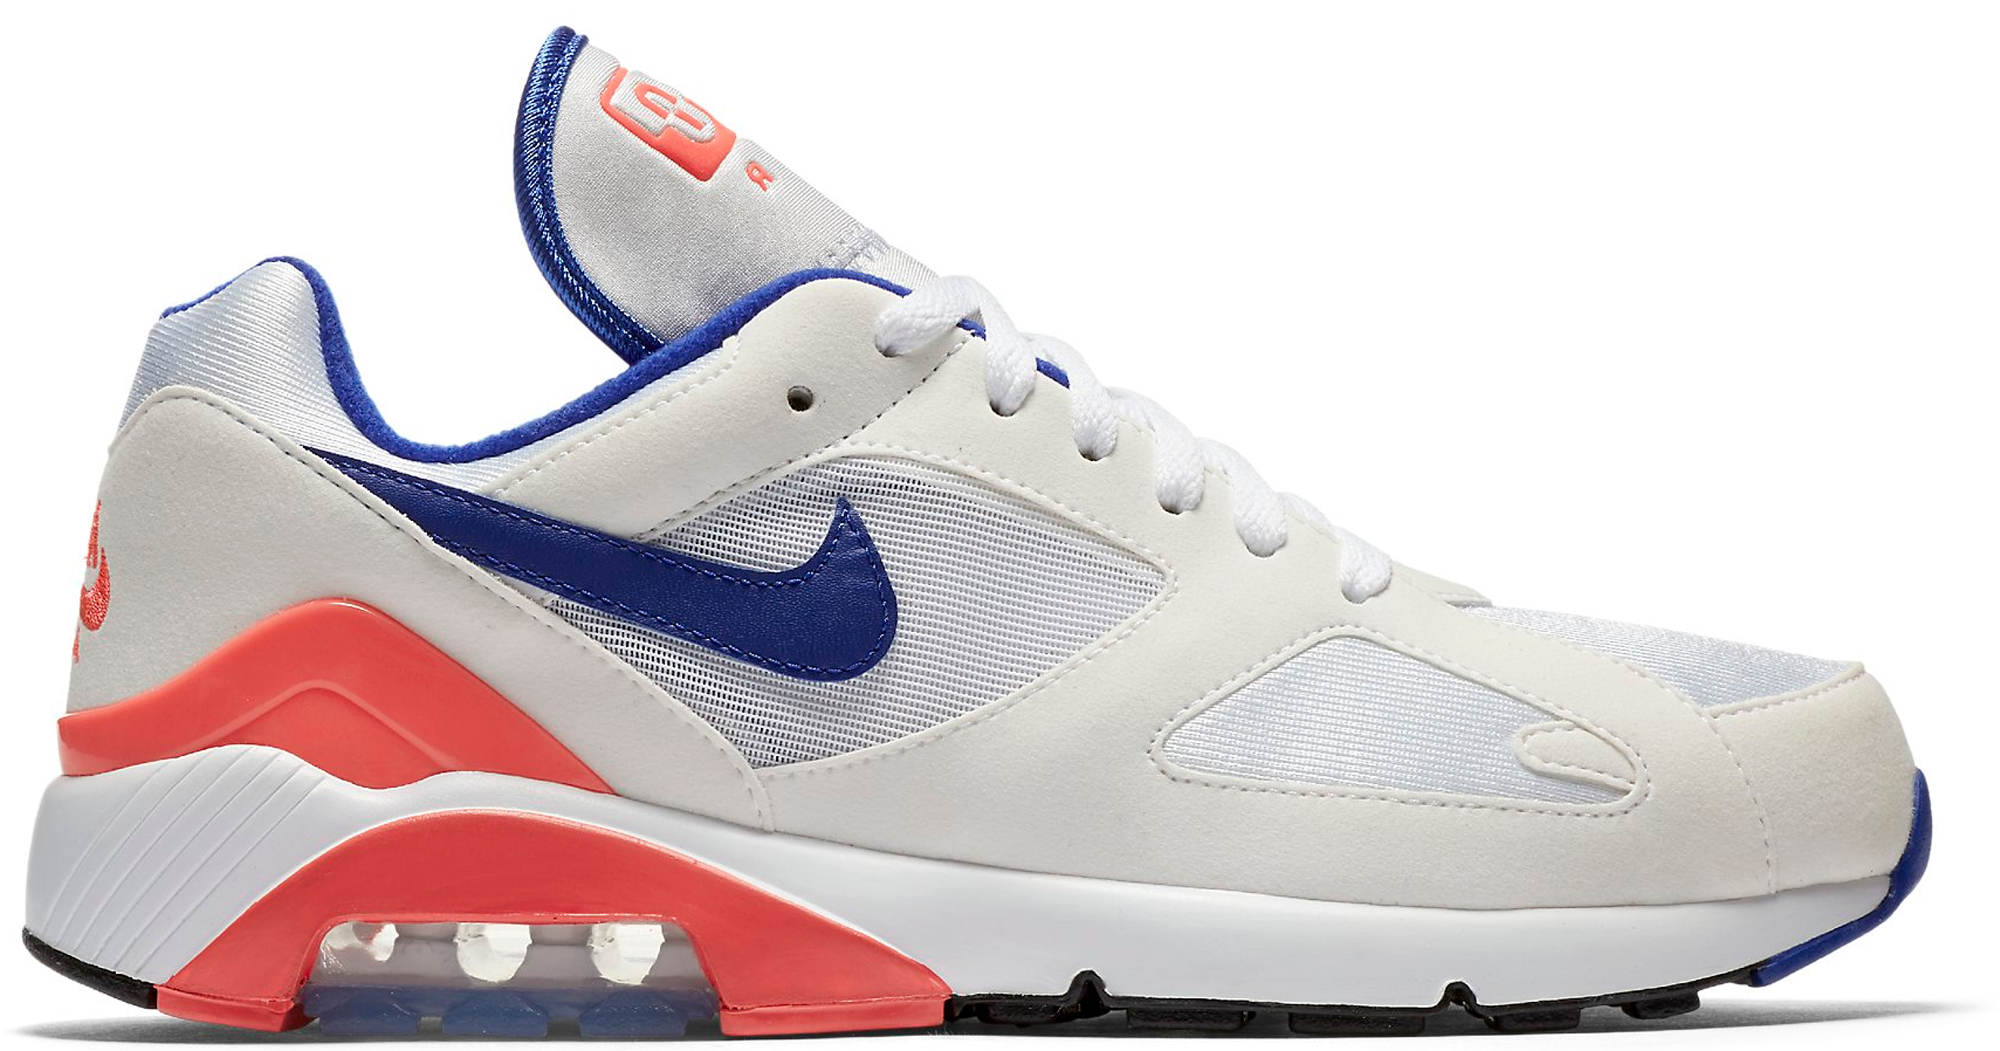 nike air max 180 ultramarine ukzn